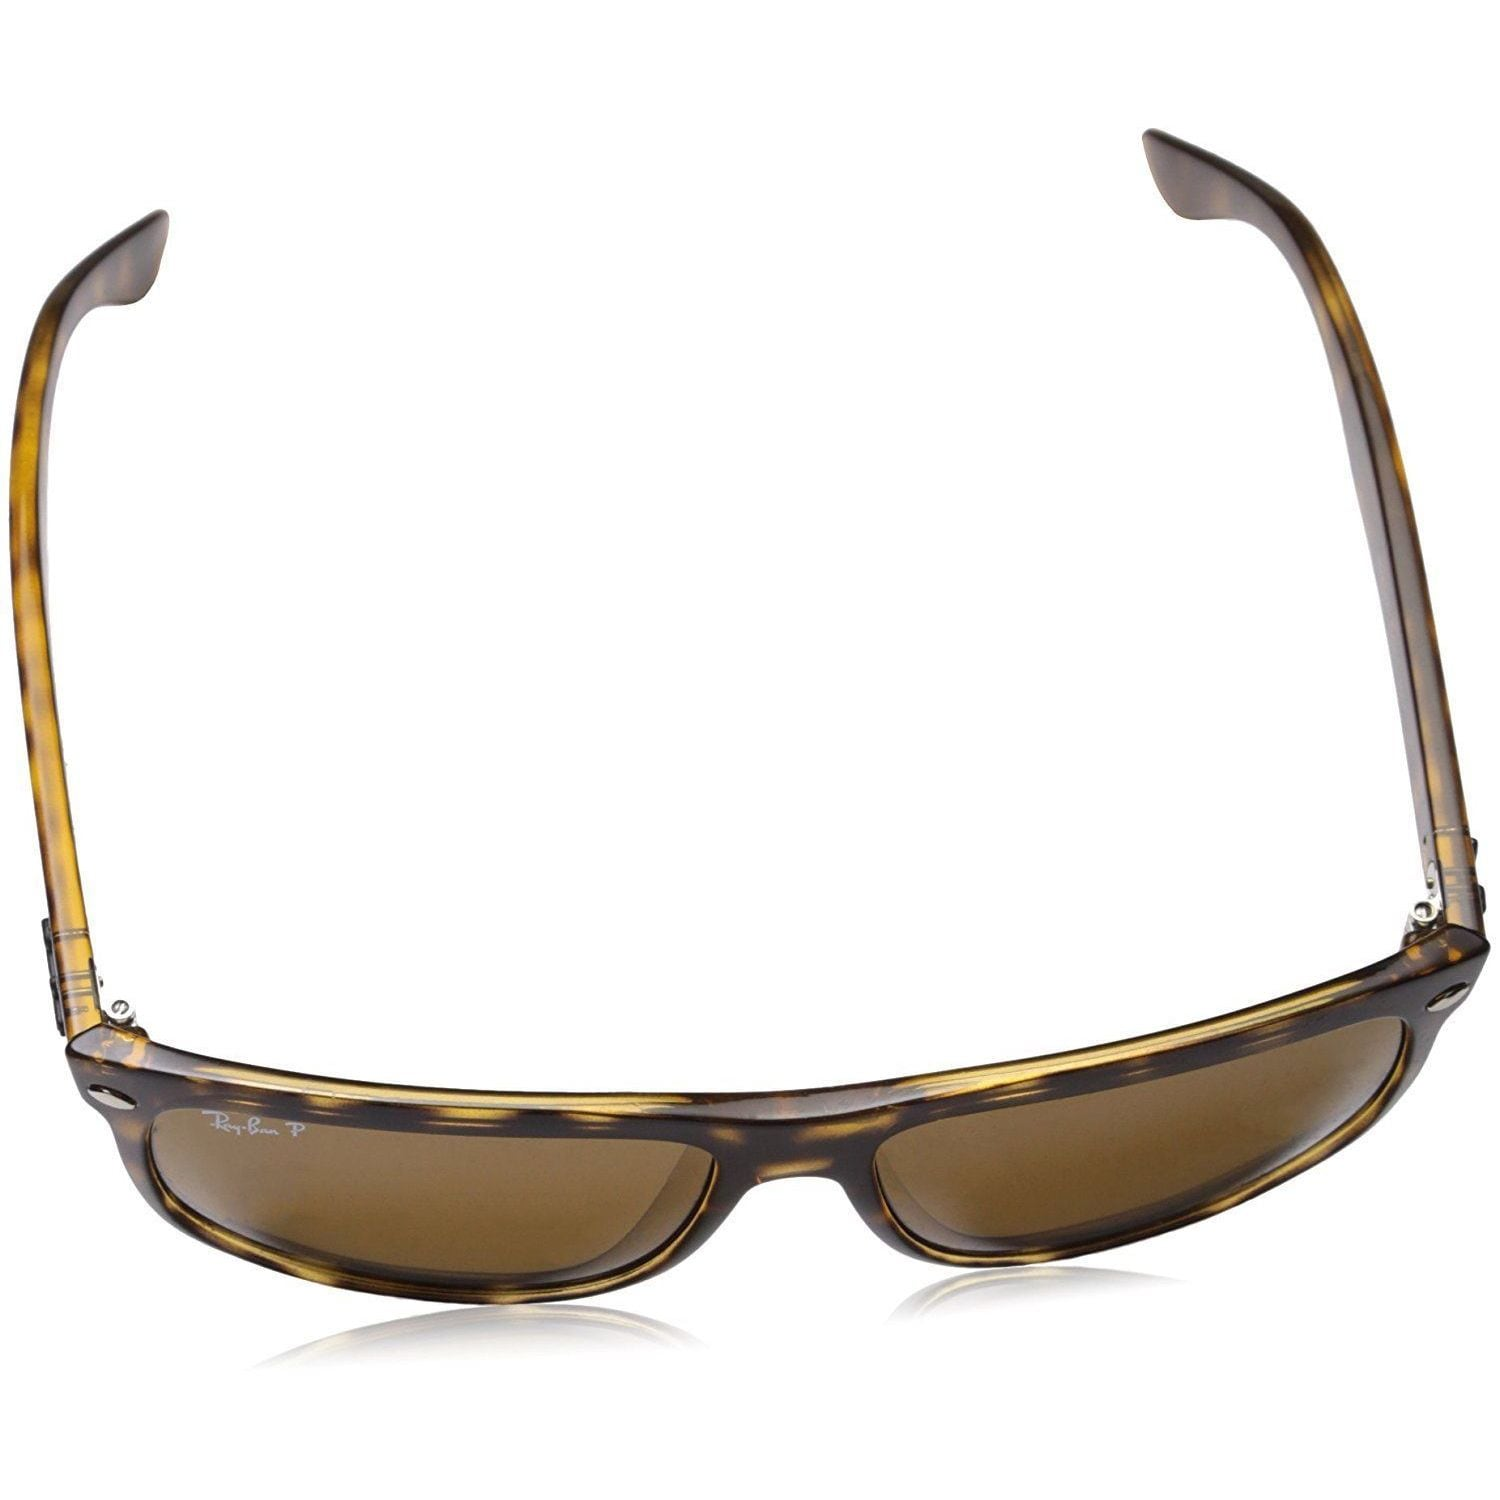 13949dbe3073b Shop Ray-Ban RB4147 710 57 Tortoise Frame Polarized Brown 60mm Lens  Sunglasses - Free Shipping Today - Overstock - 14327942